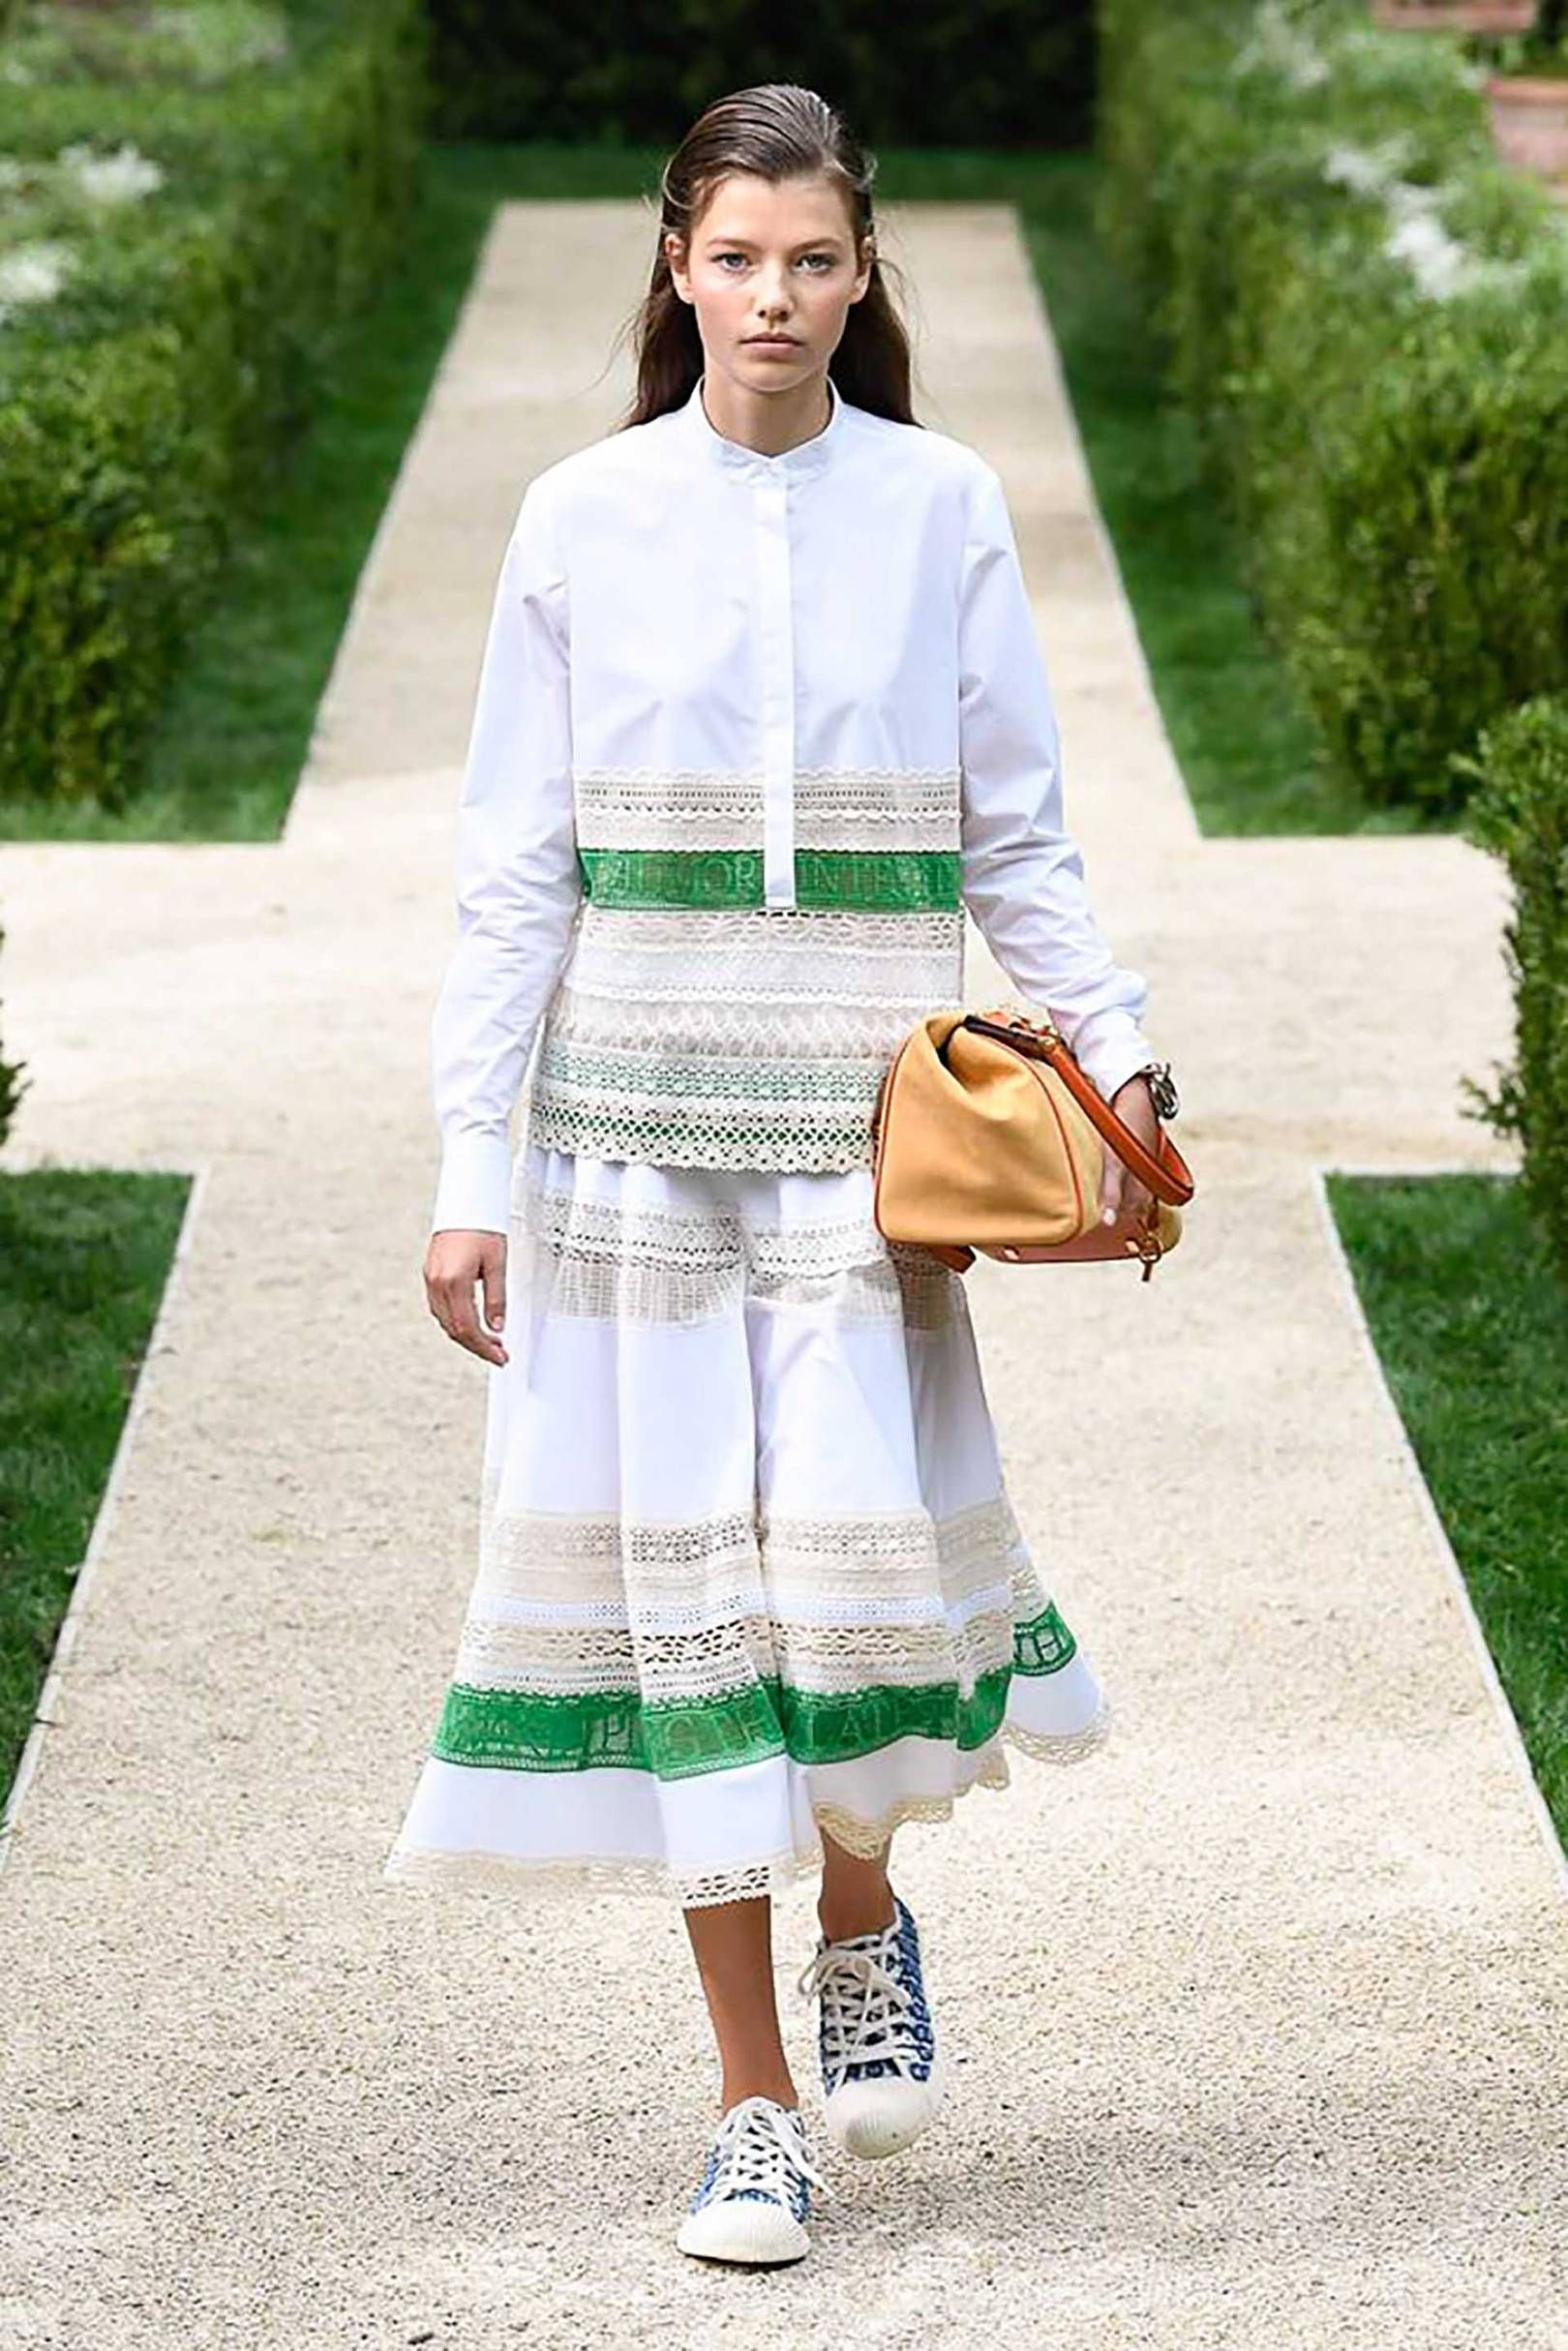 986a45927300 Tory Burch Spring/Summer 2019 Ready-To-Wear | ss19 | Fashion, How to ...